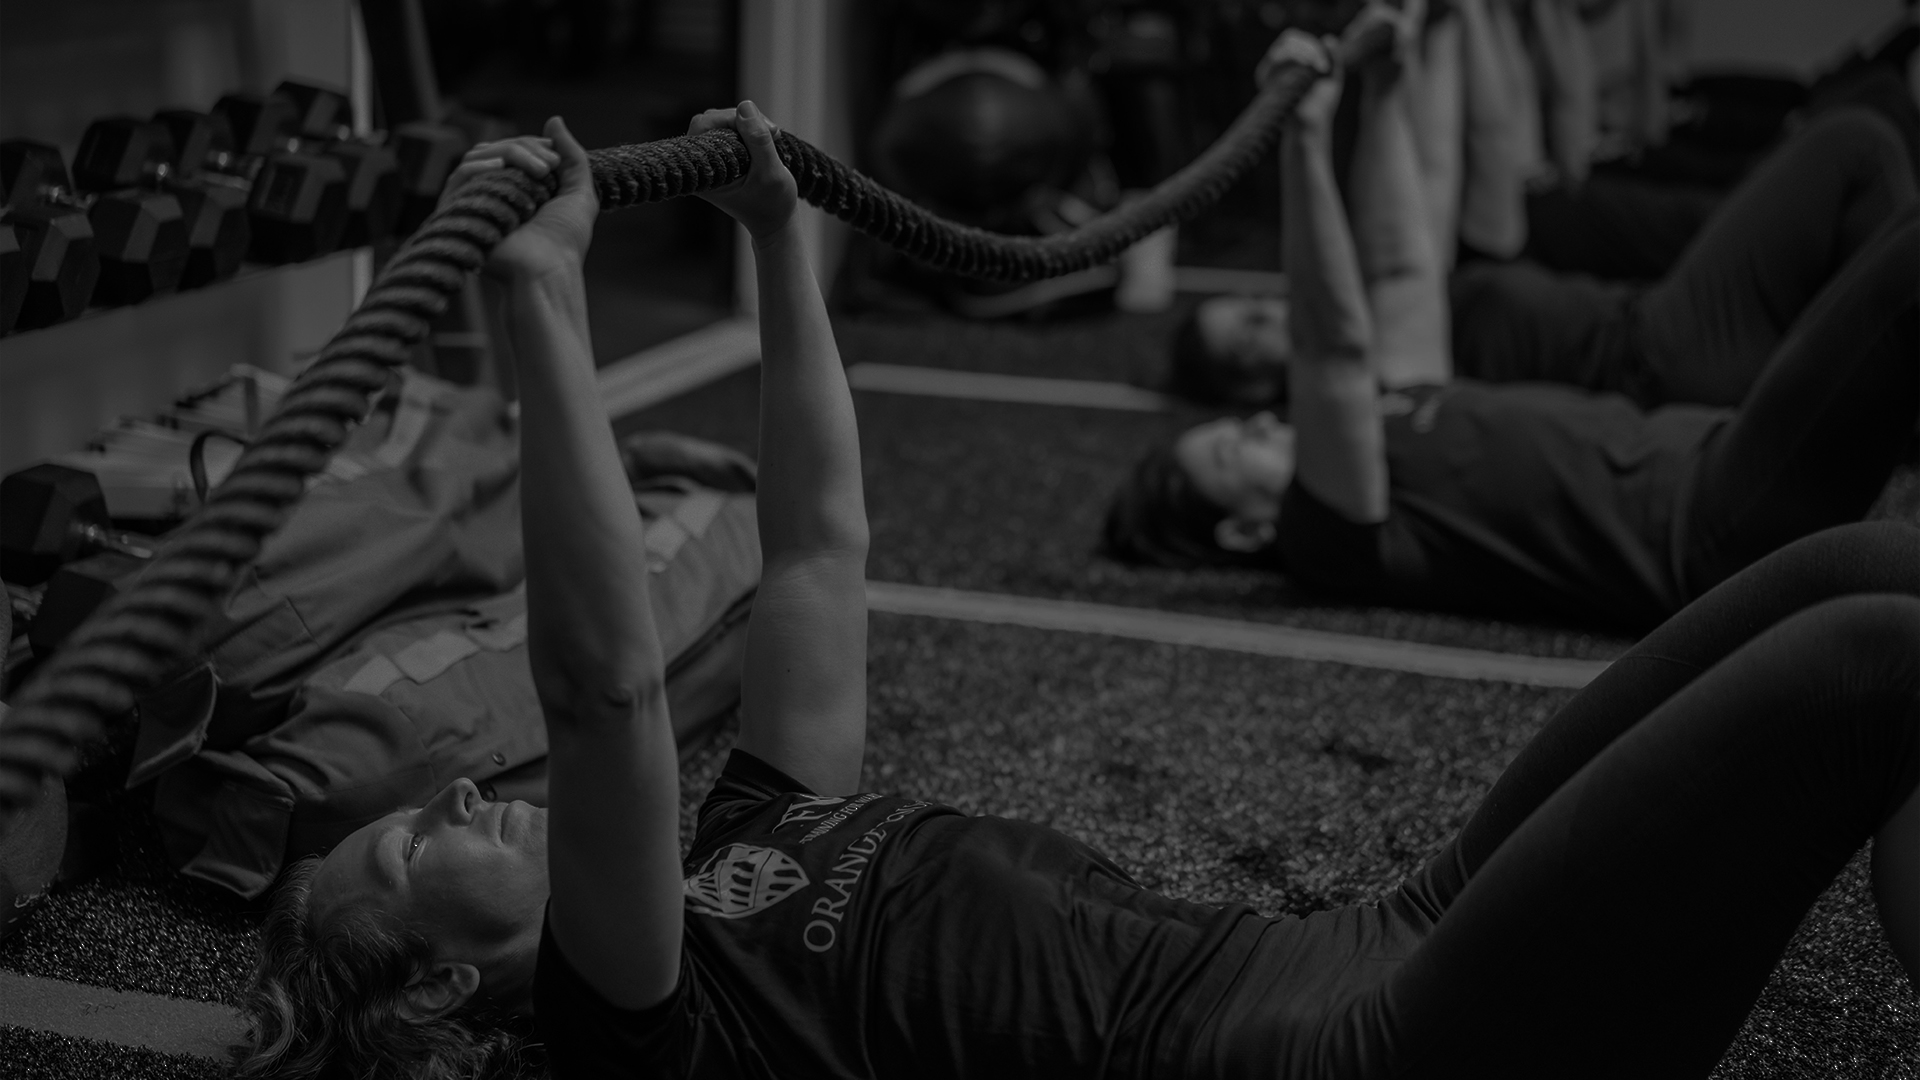 Strength Training - we help you Increase strength, breakthrough plateaus and reach new heights with our tailored-to-you strength program.learn more→